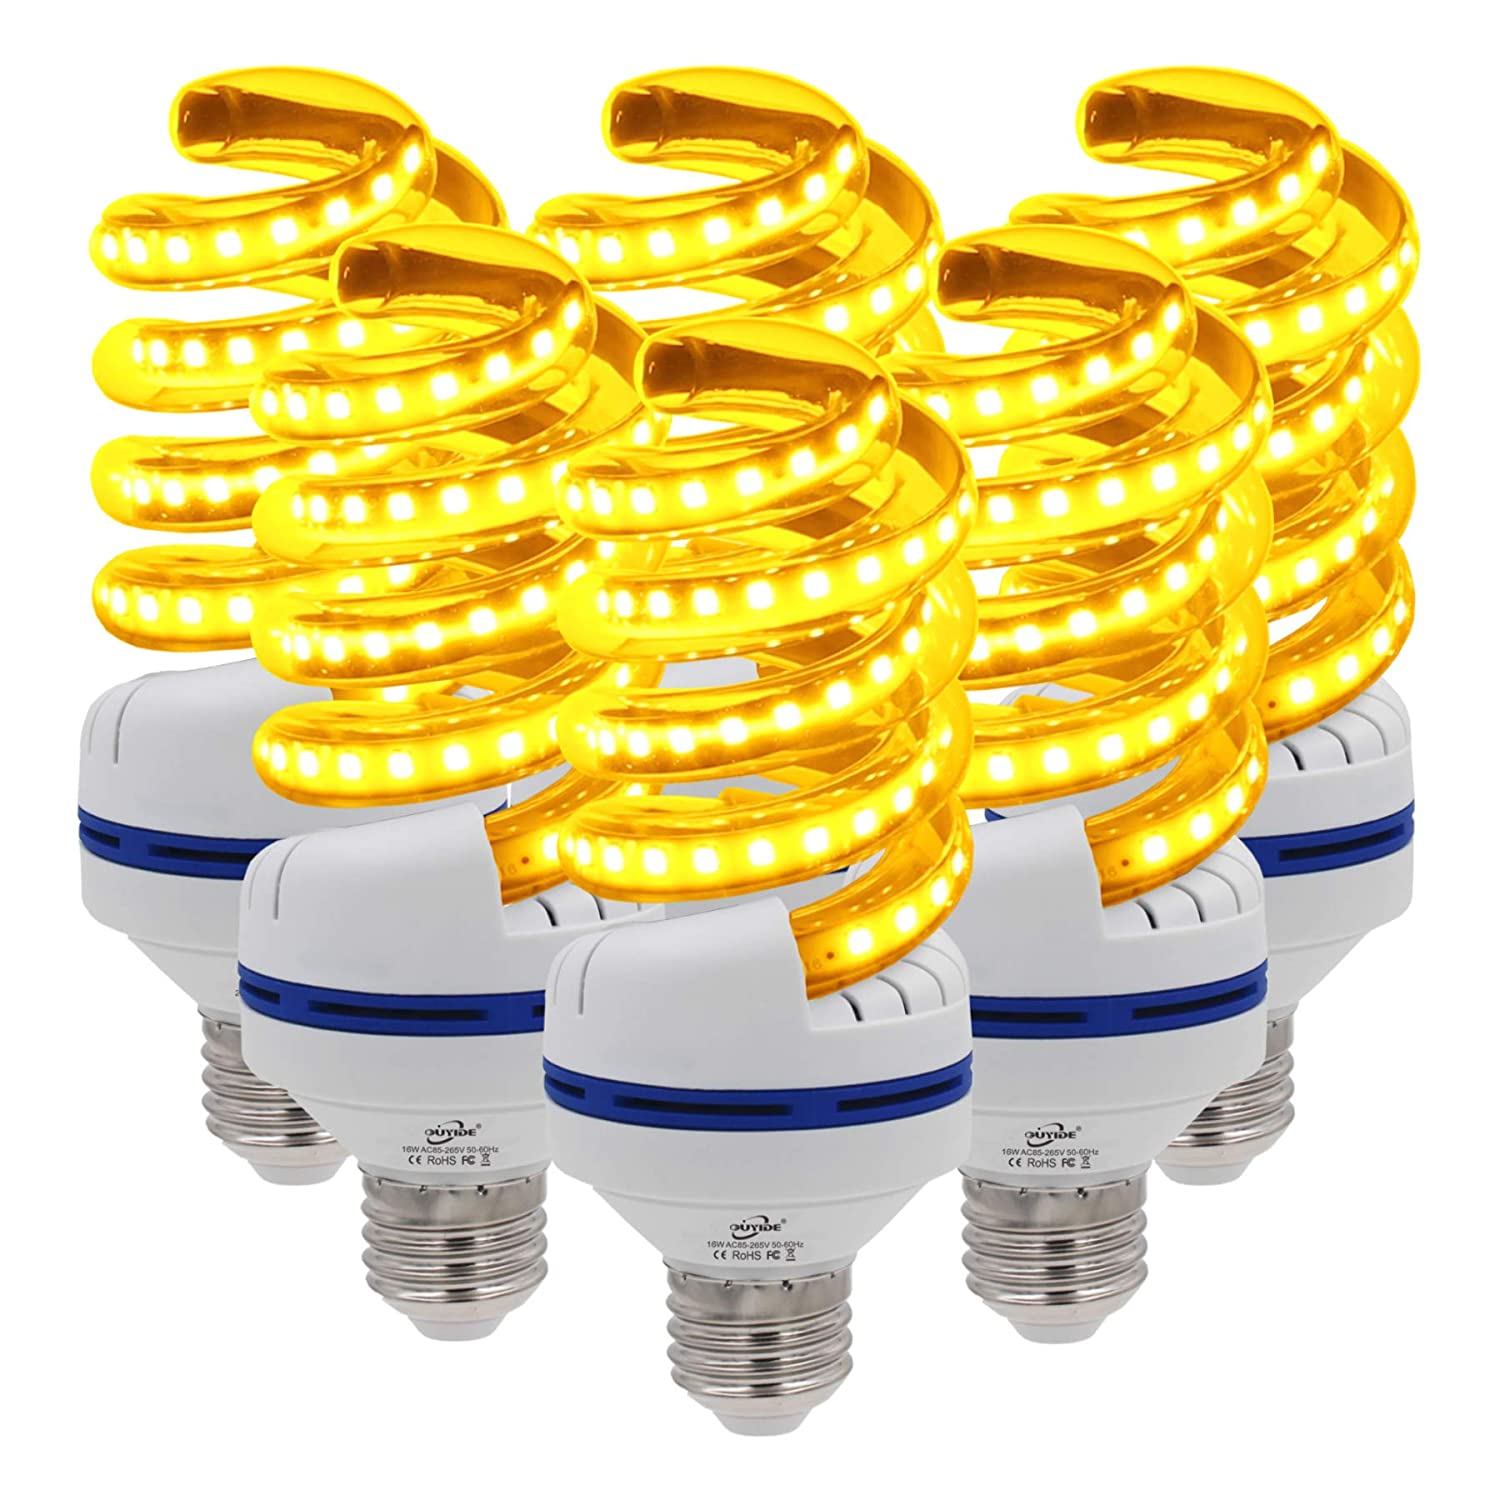 OUYIDE Yellow LED Bulbs, Amber Bedroom Night Light Bulb A21 Bulbs